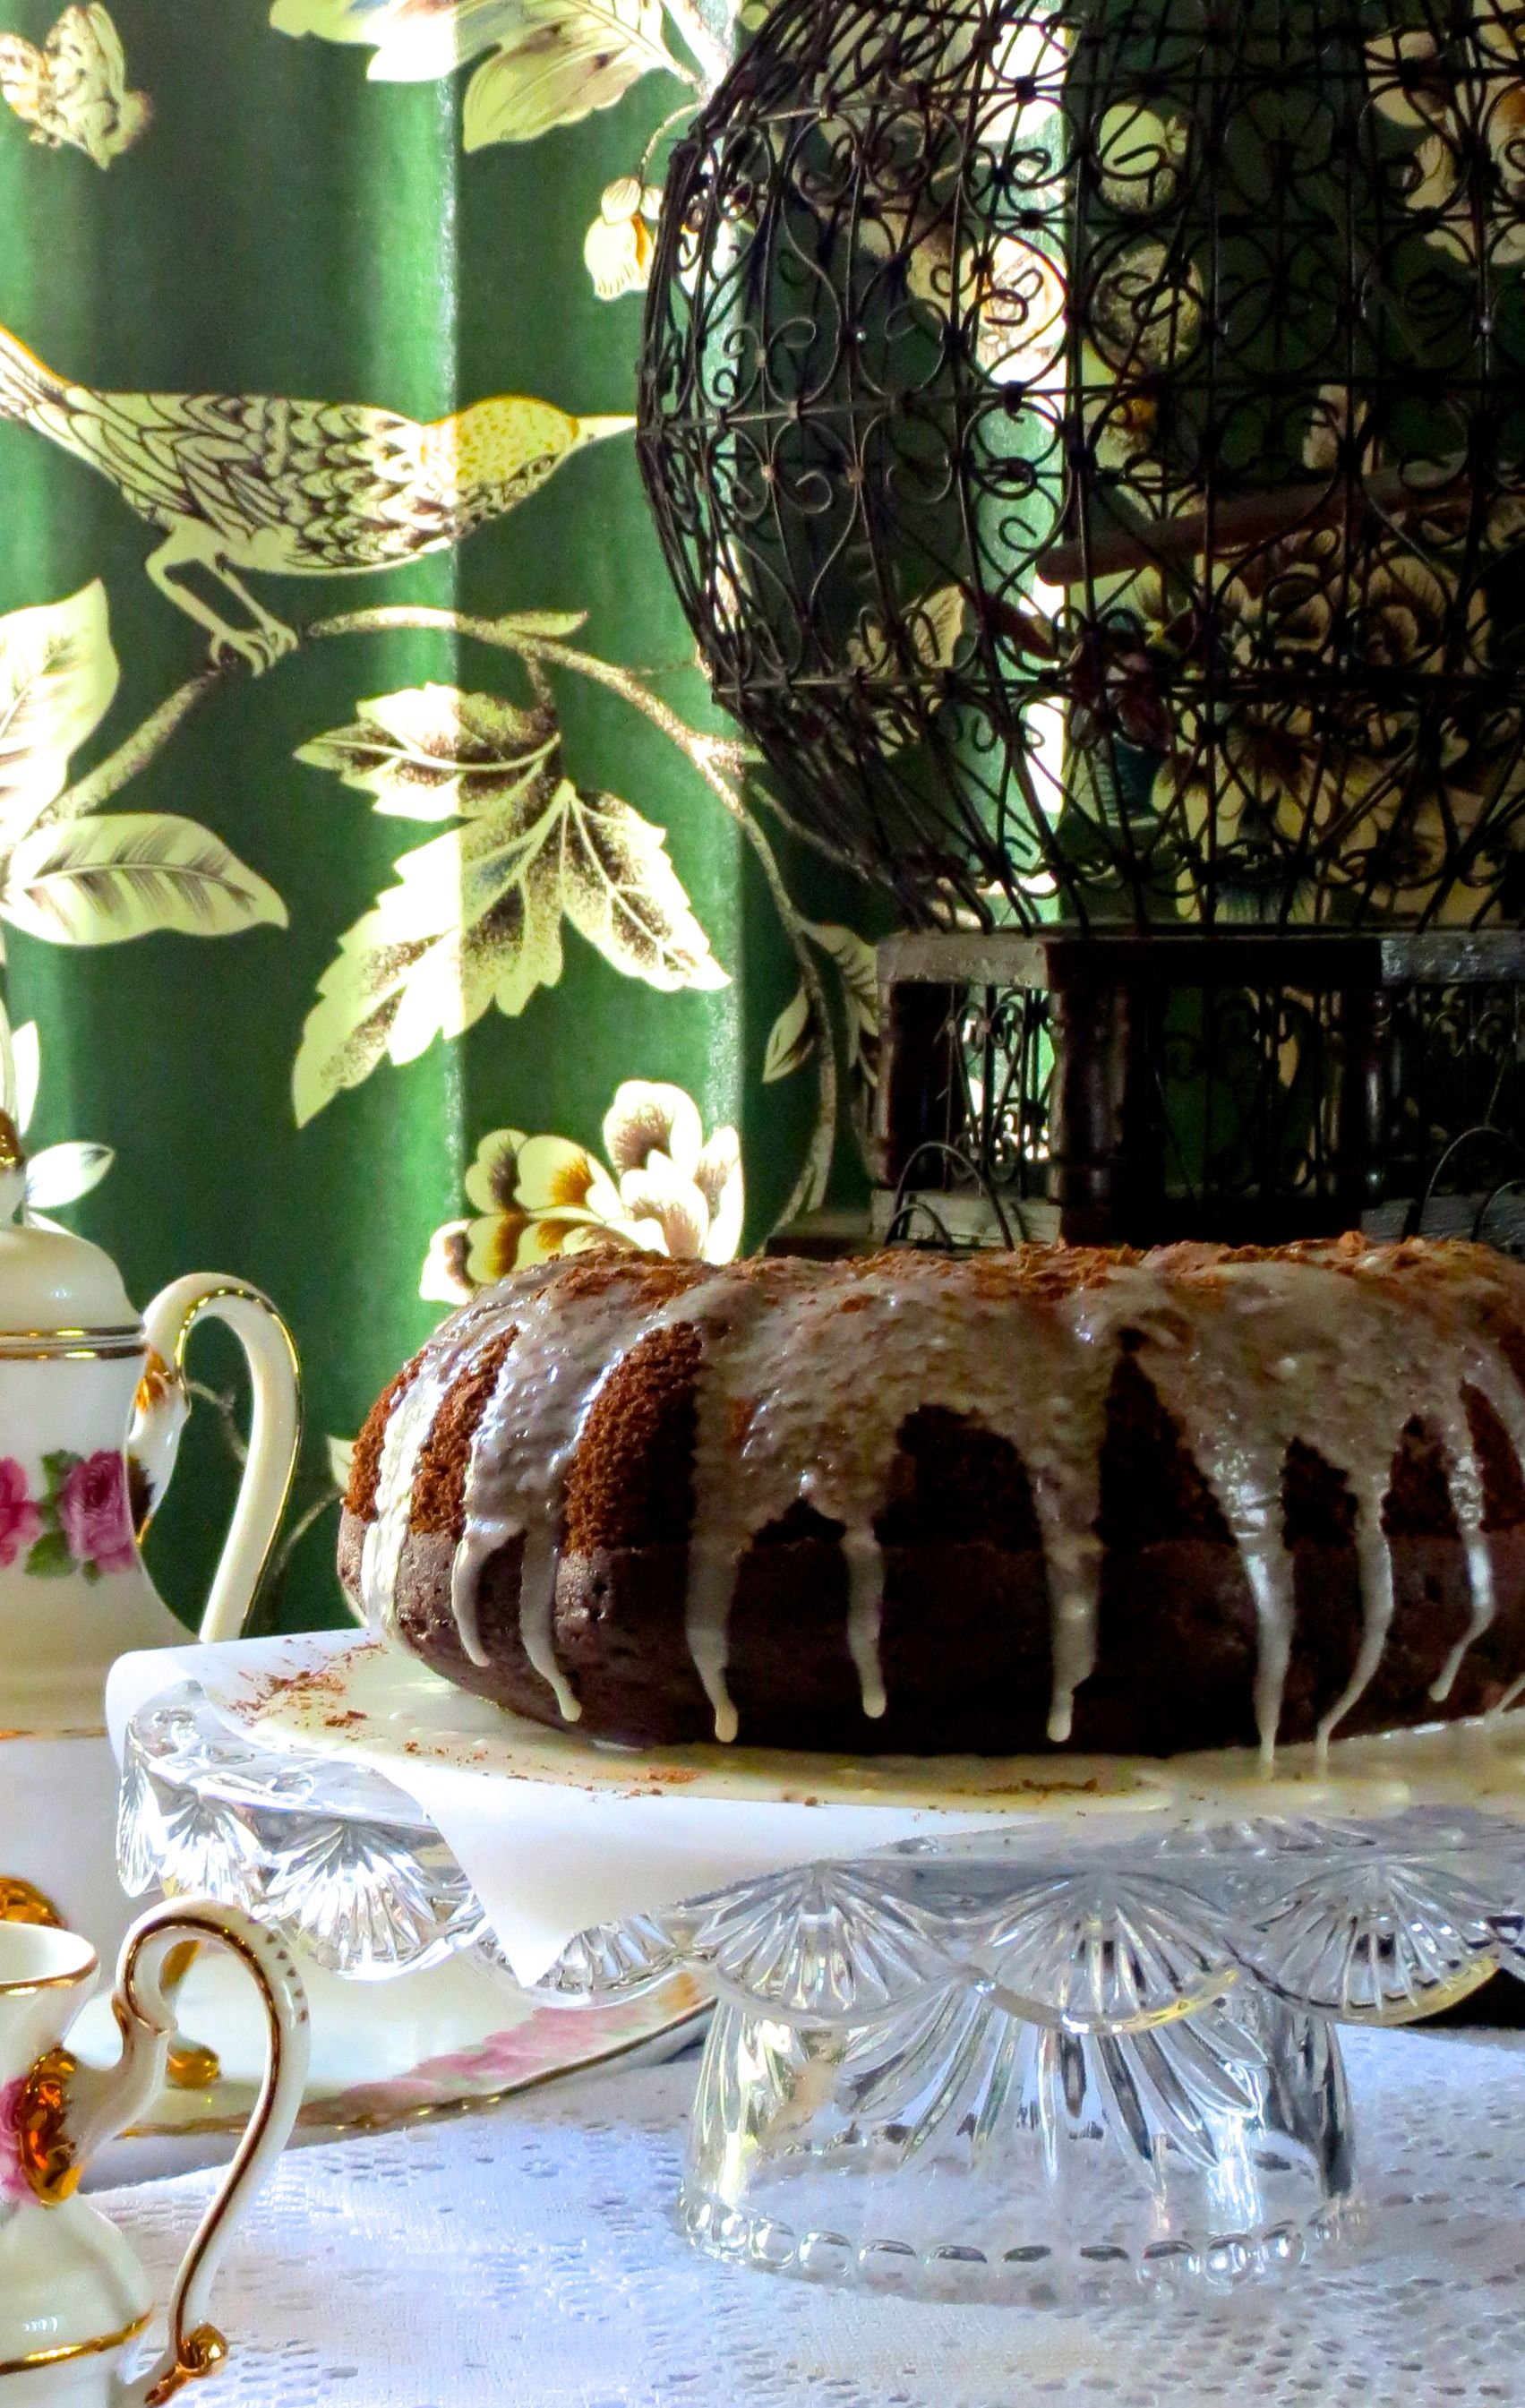 Chocolate Bundt with Vanilla Drizzle and Cocoa Dust